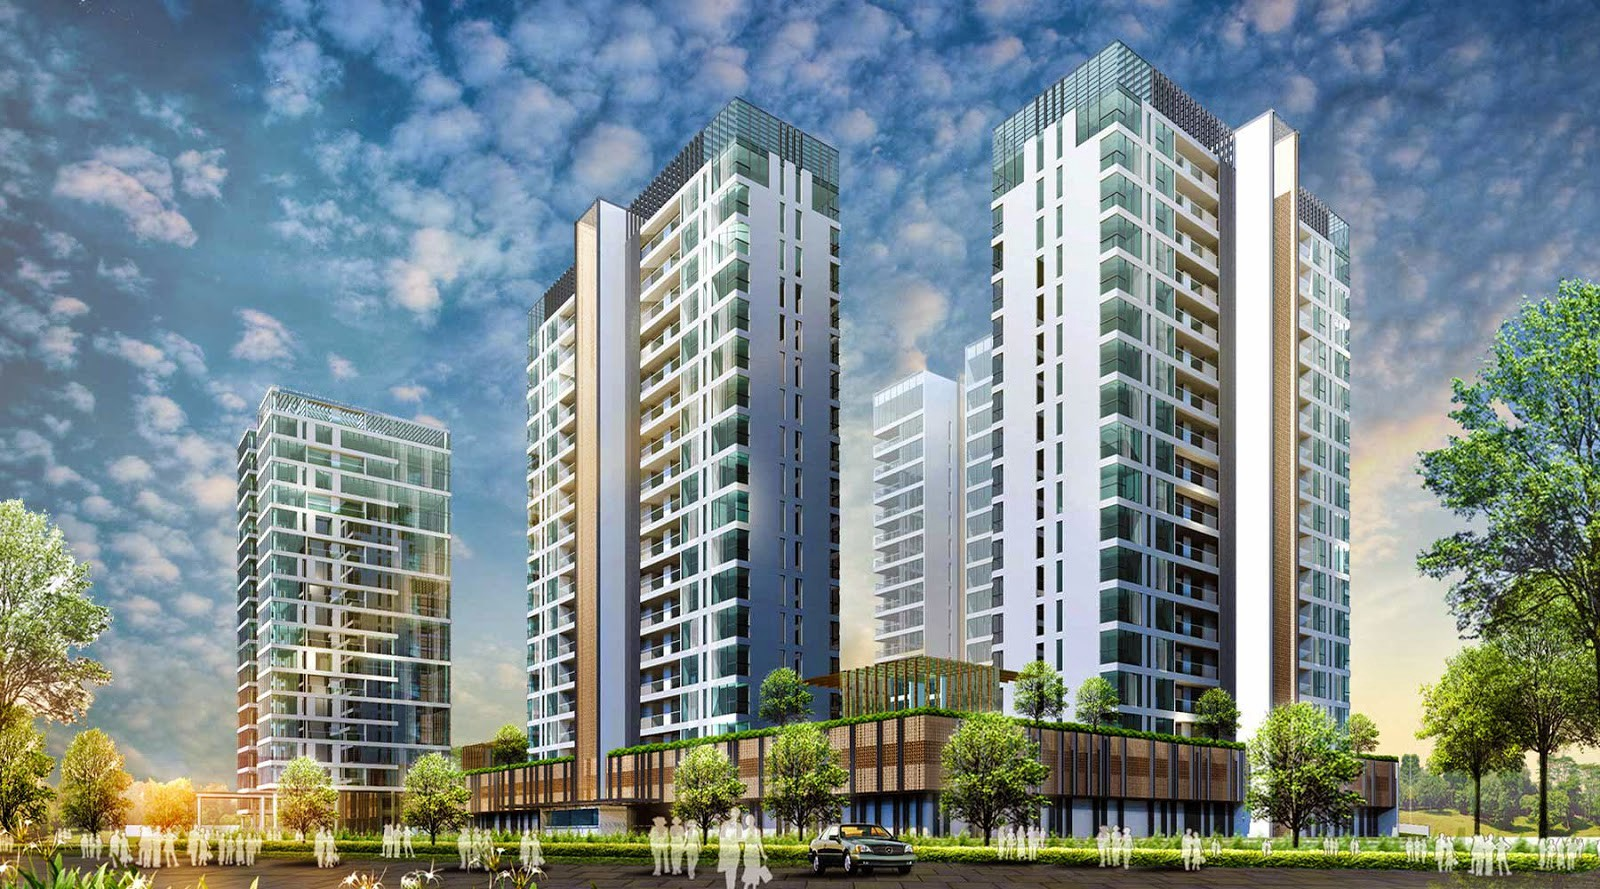 ... Has Become The Go To Destination For People Looking For Luxury  Residential Properties To Invest In. An Increasing Rise In Demand For Affordable  Homes In ...